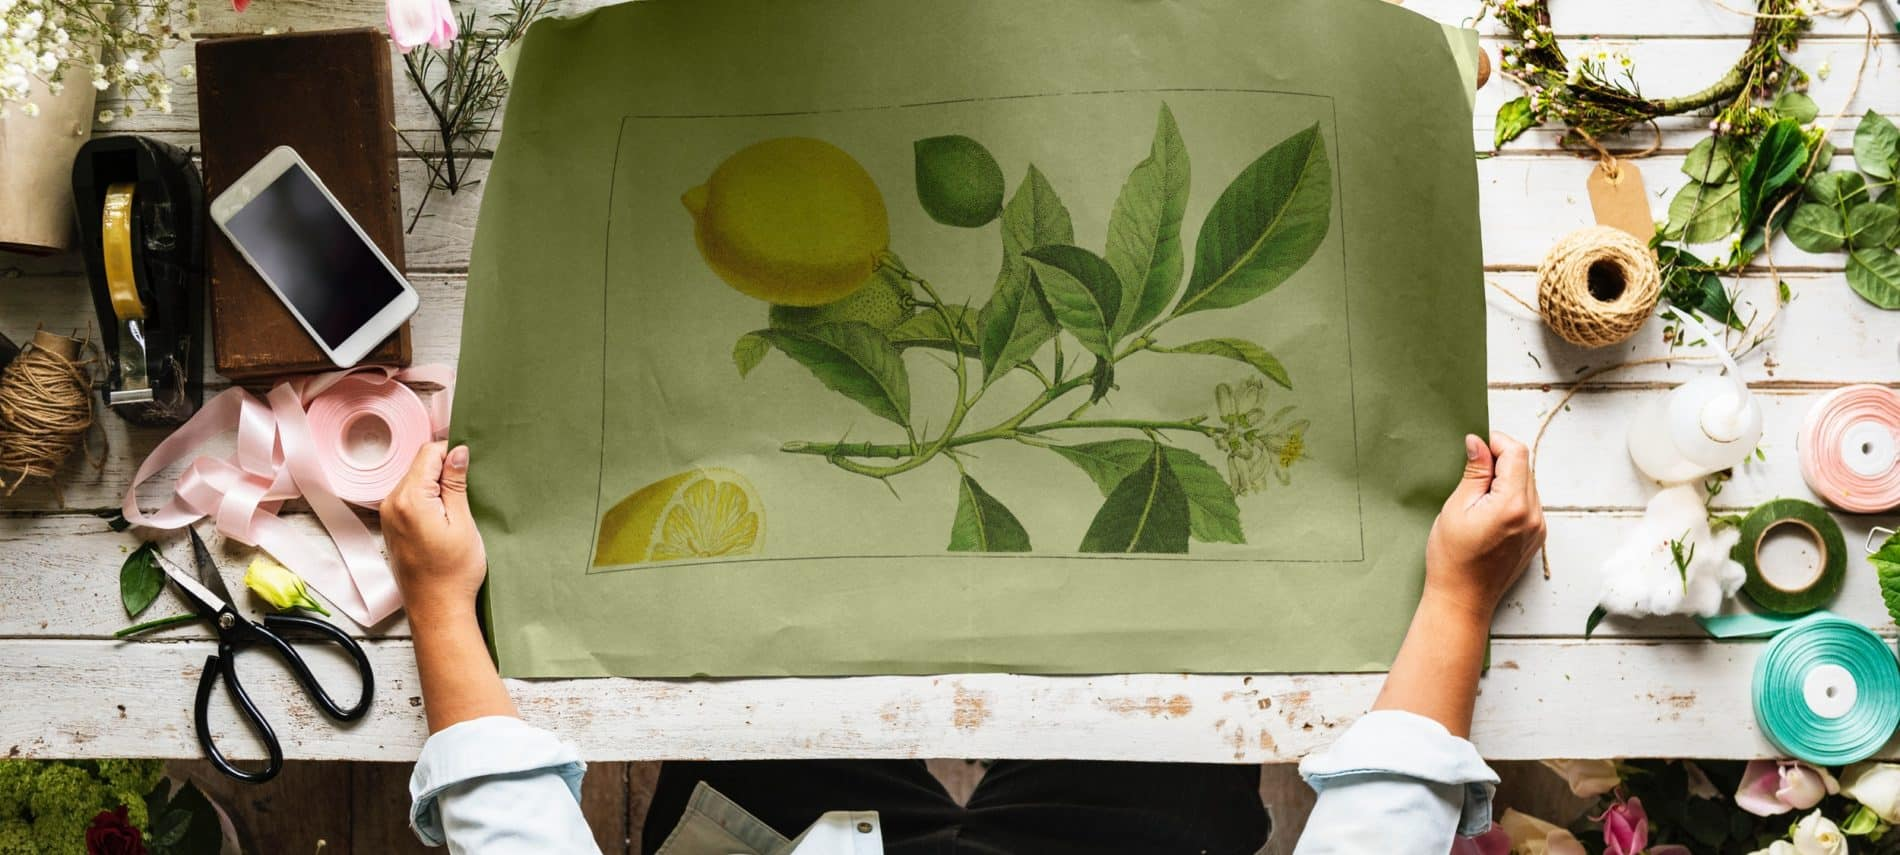 man standing in front of drafting table covered in flowers and holding a drawn sketch of a lemon tree branch